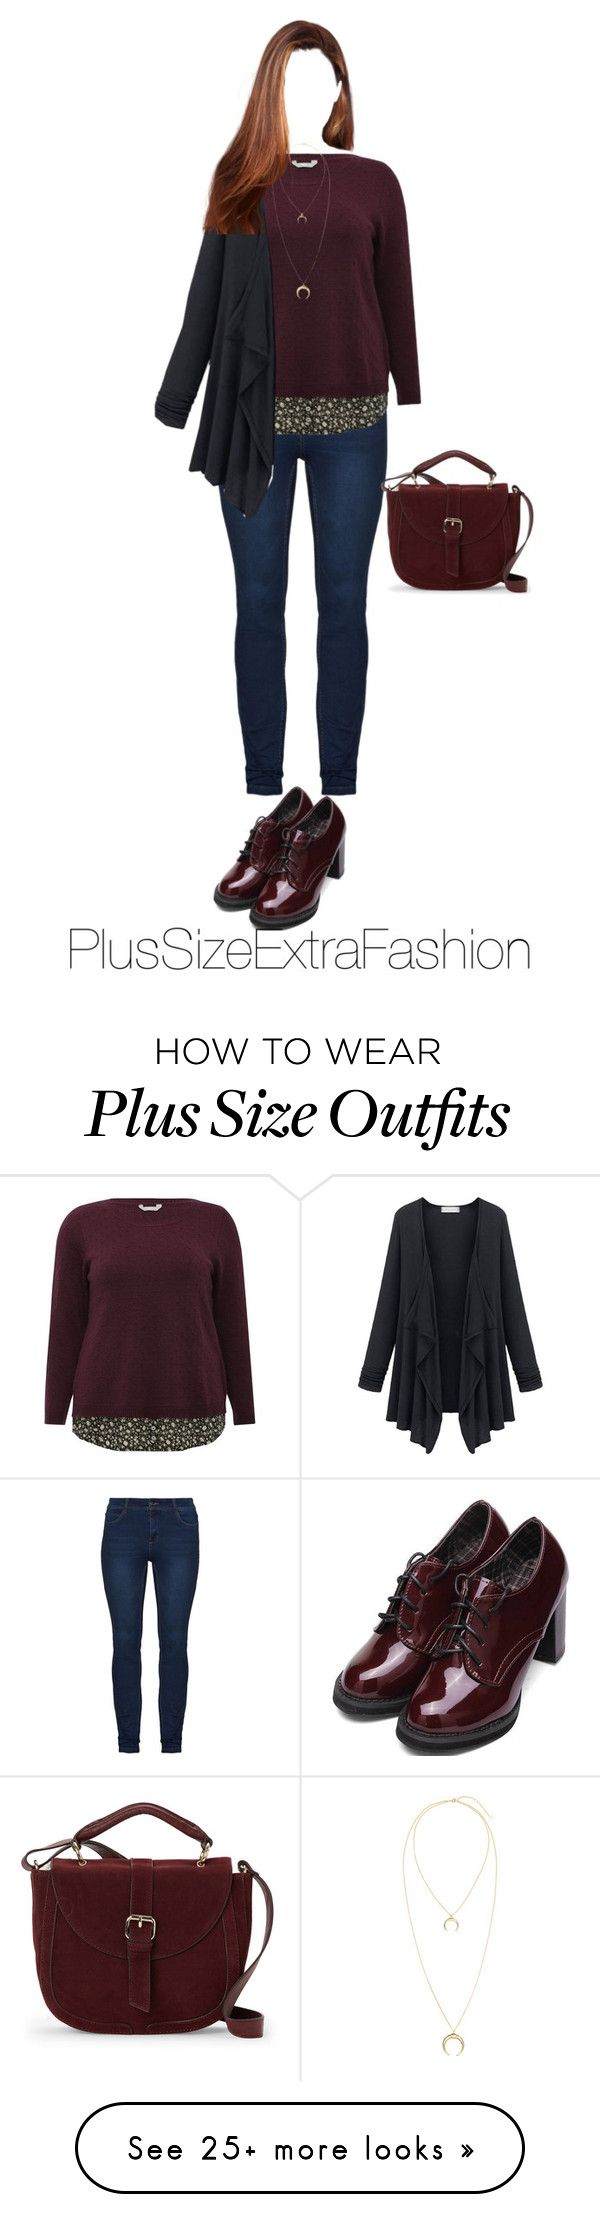 marvelous friday night outfits plus size